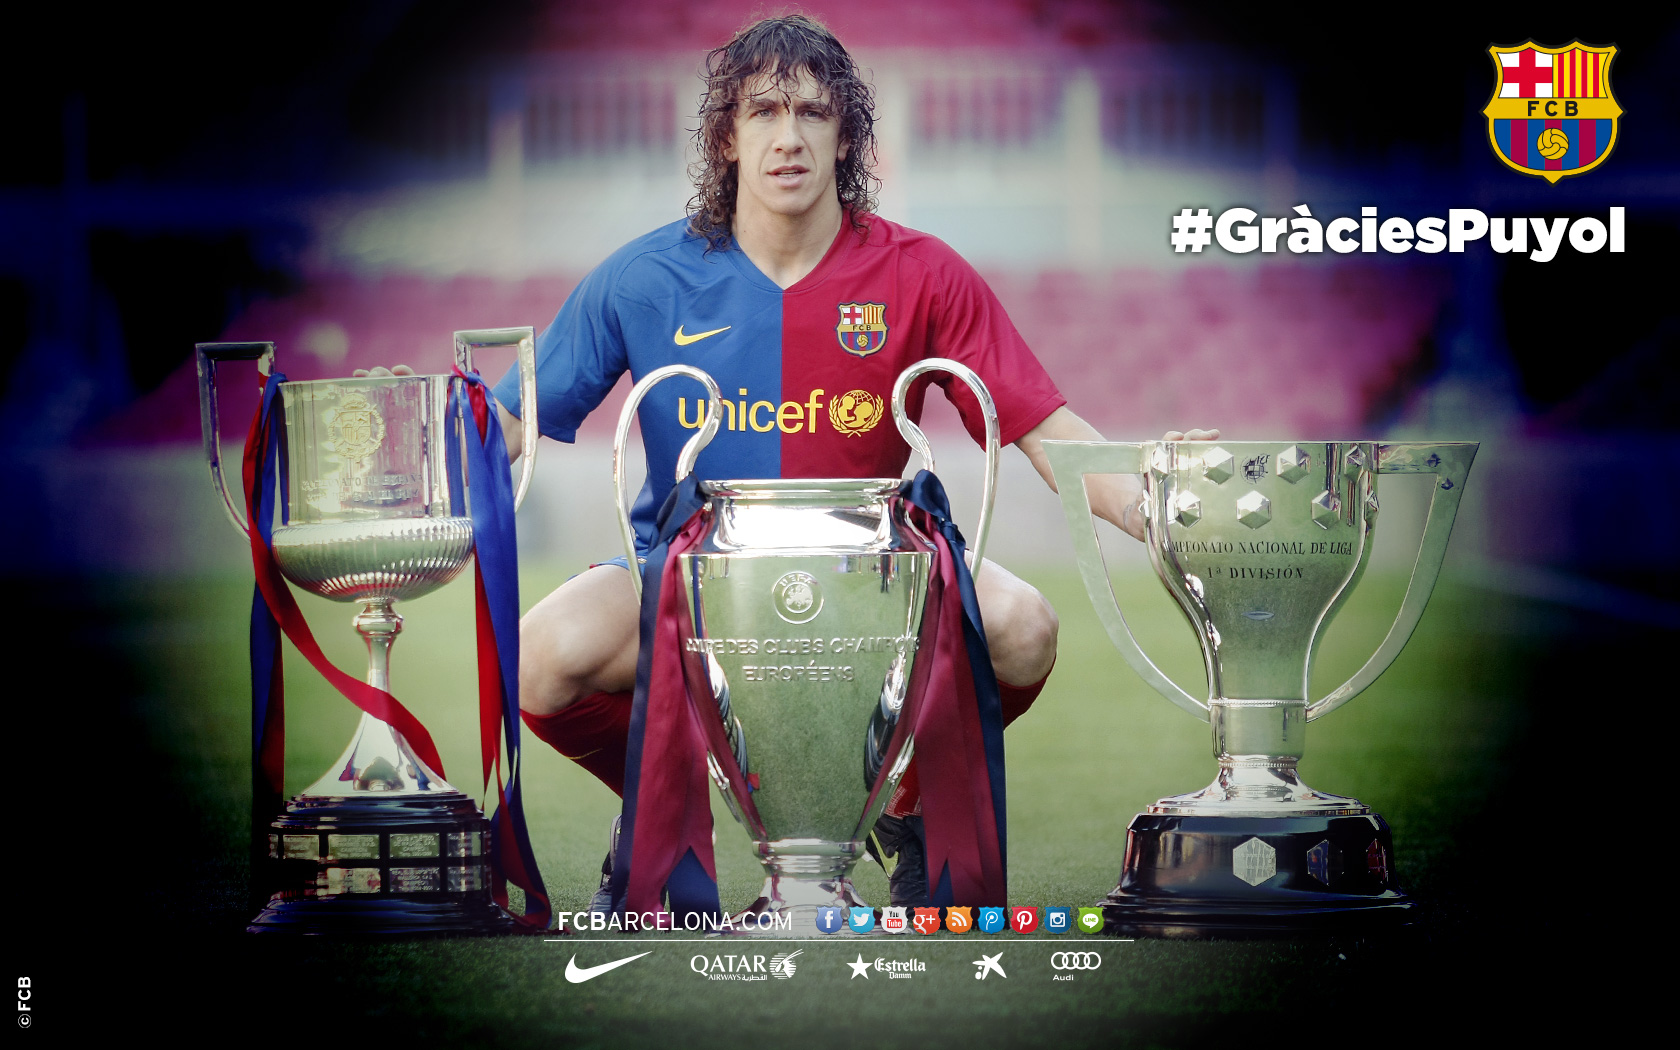 http://media1.fcbarcelona.com/media/asset_publics/resources/000/089/226/original/wallpaper-homenatge_puyol_01.v1393949267.jpg